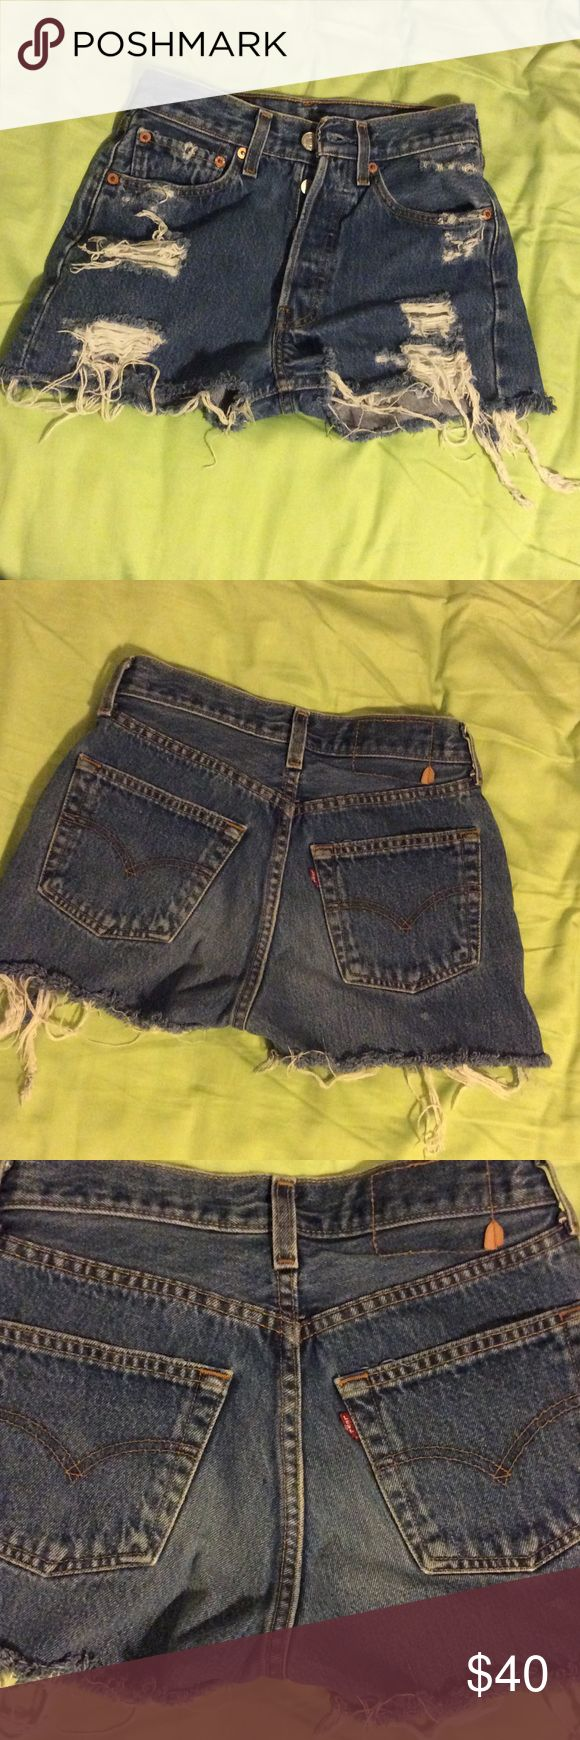 Levi cutoff jean shorts So sexy and amazing I love love these bought  them off posh and are way too small.  Prob a size 24 or 25 Levi's Shorts Jean Shorts